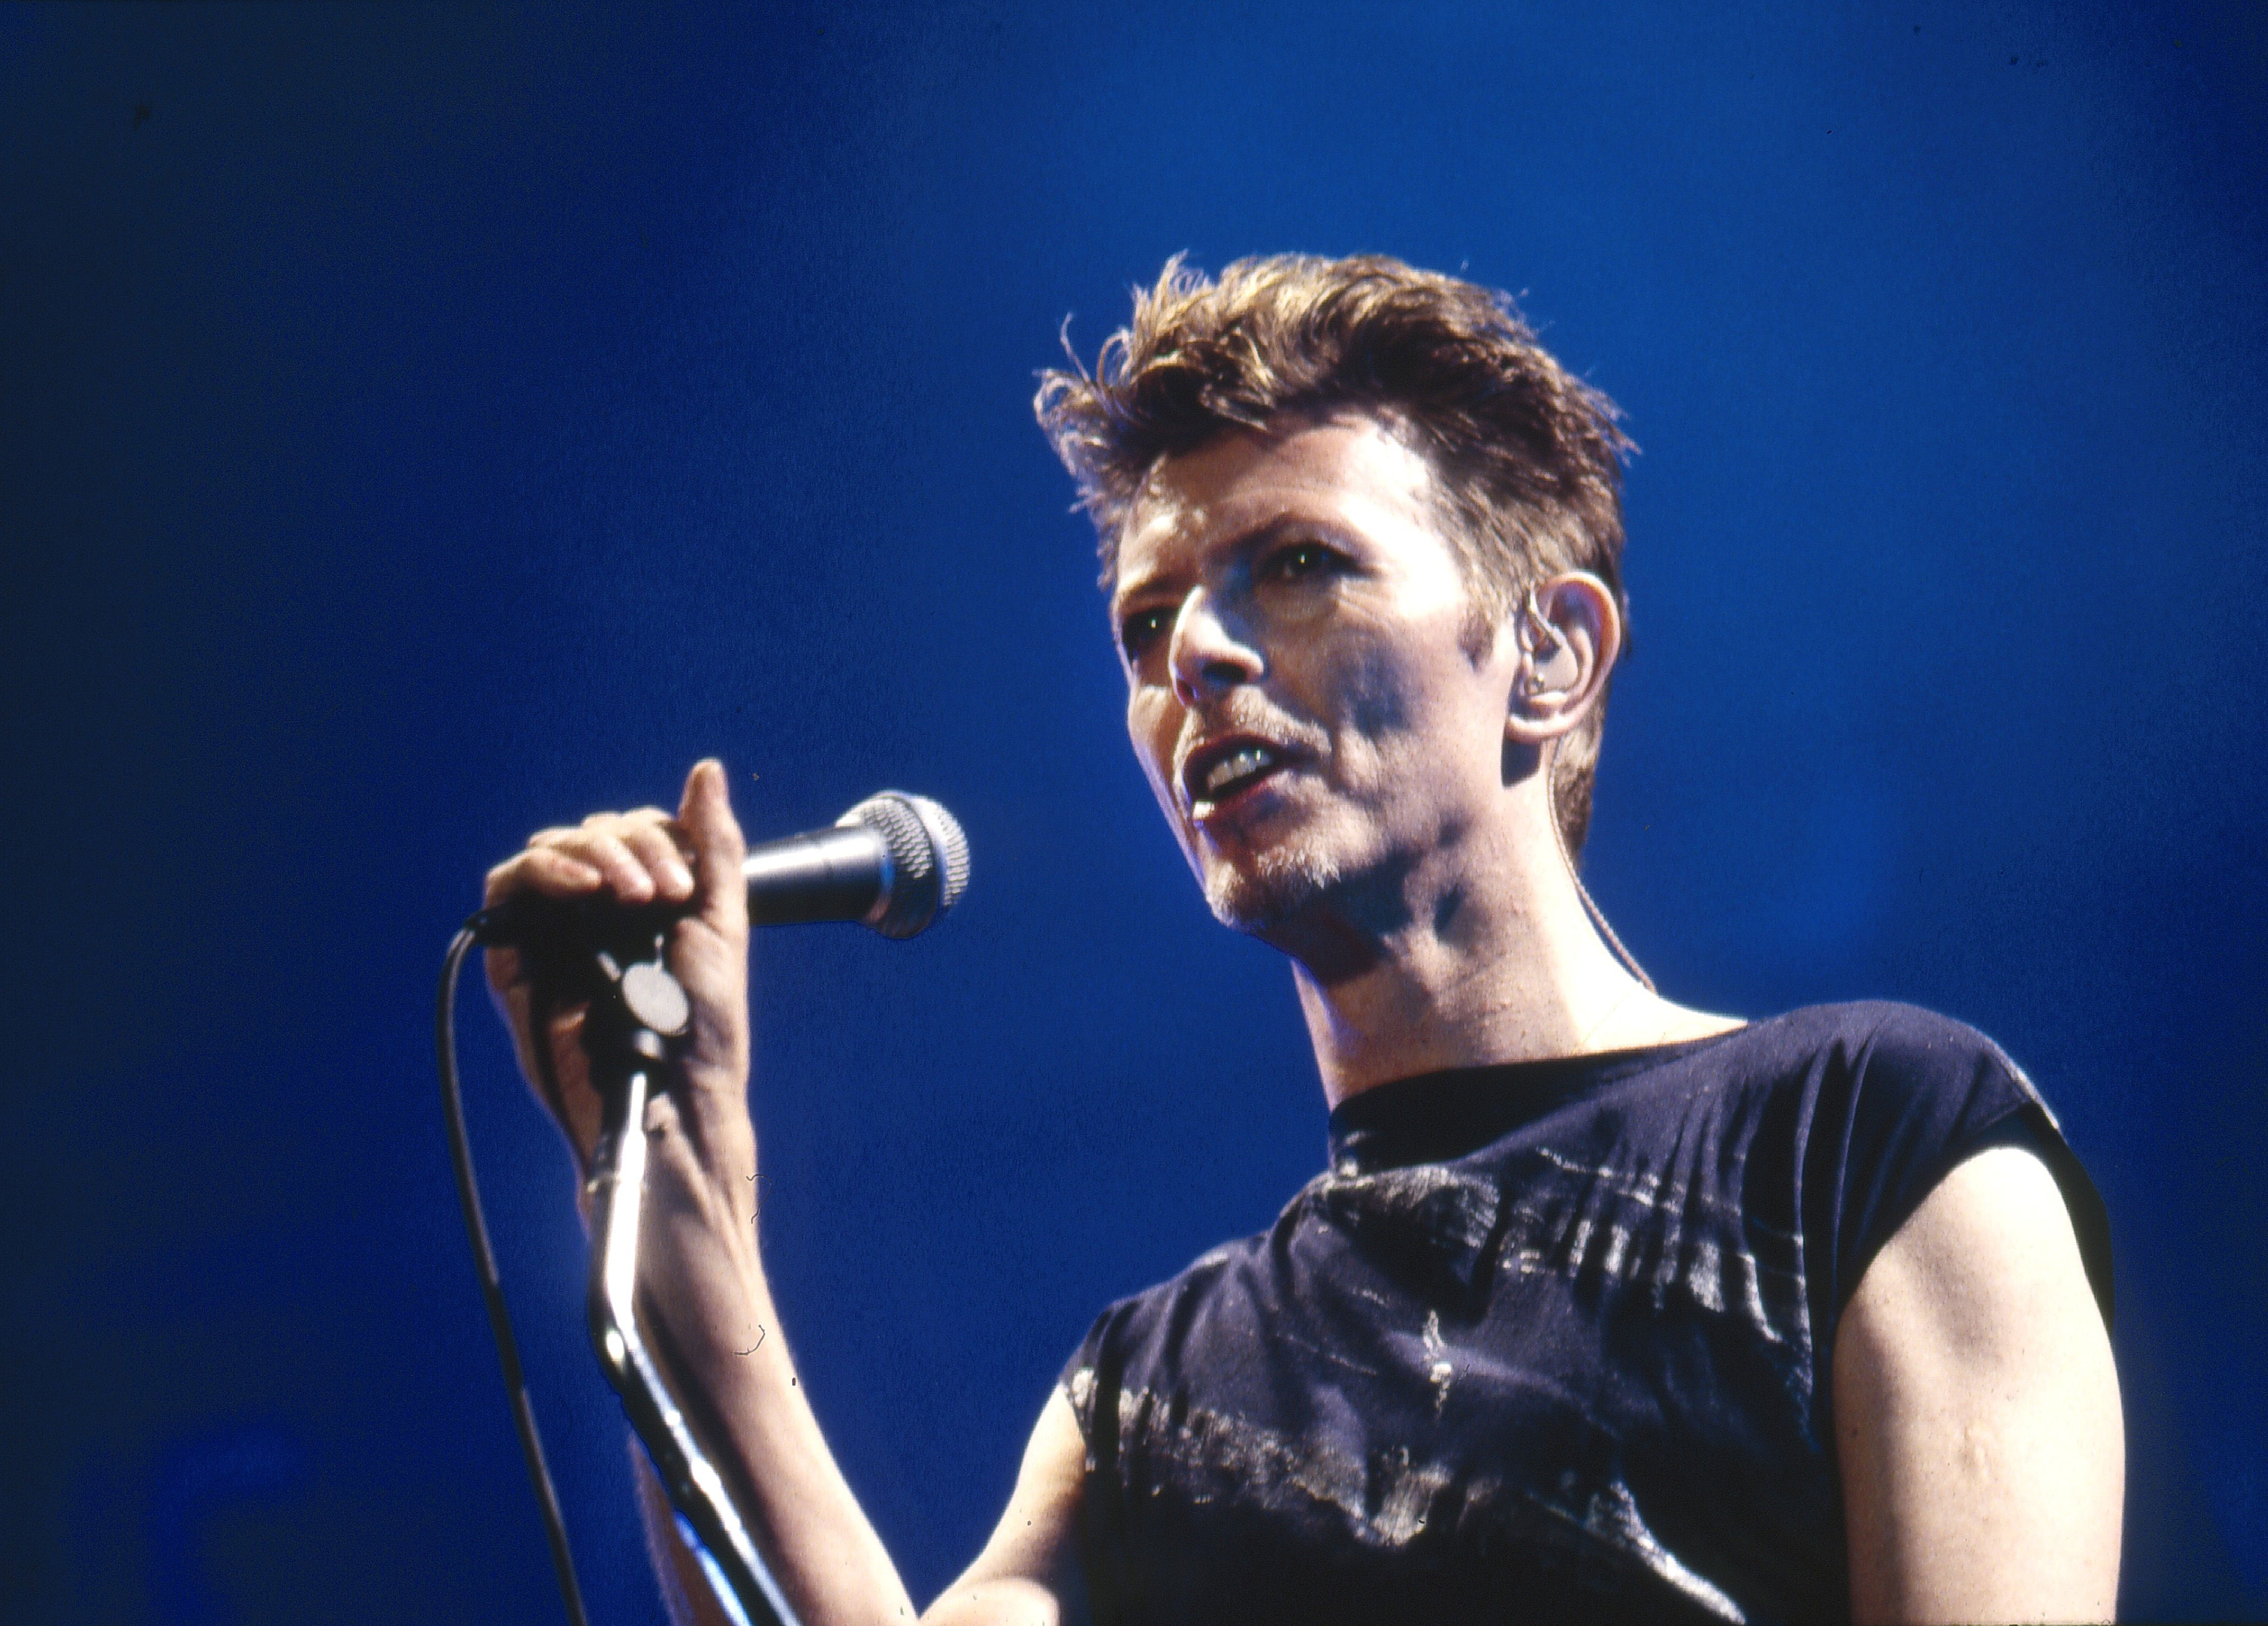 Hear David Bowie's Rare 'Live Eno Mix' of 'The Man Who Sold the World'